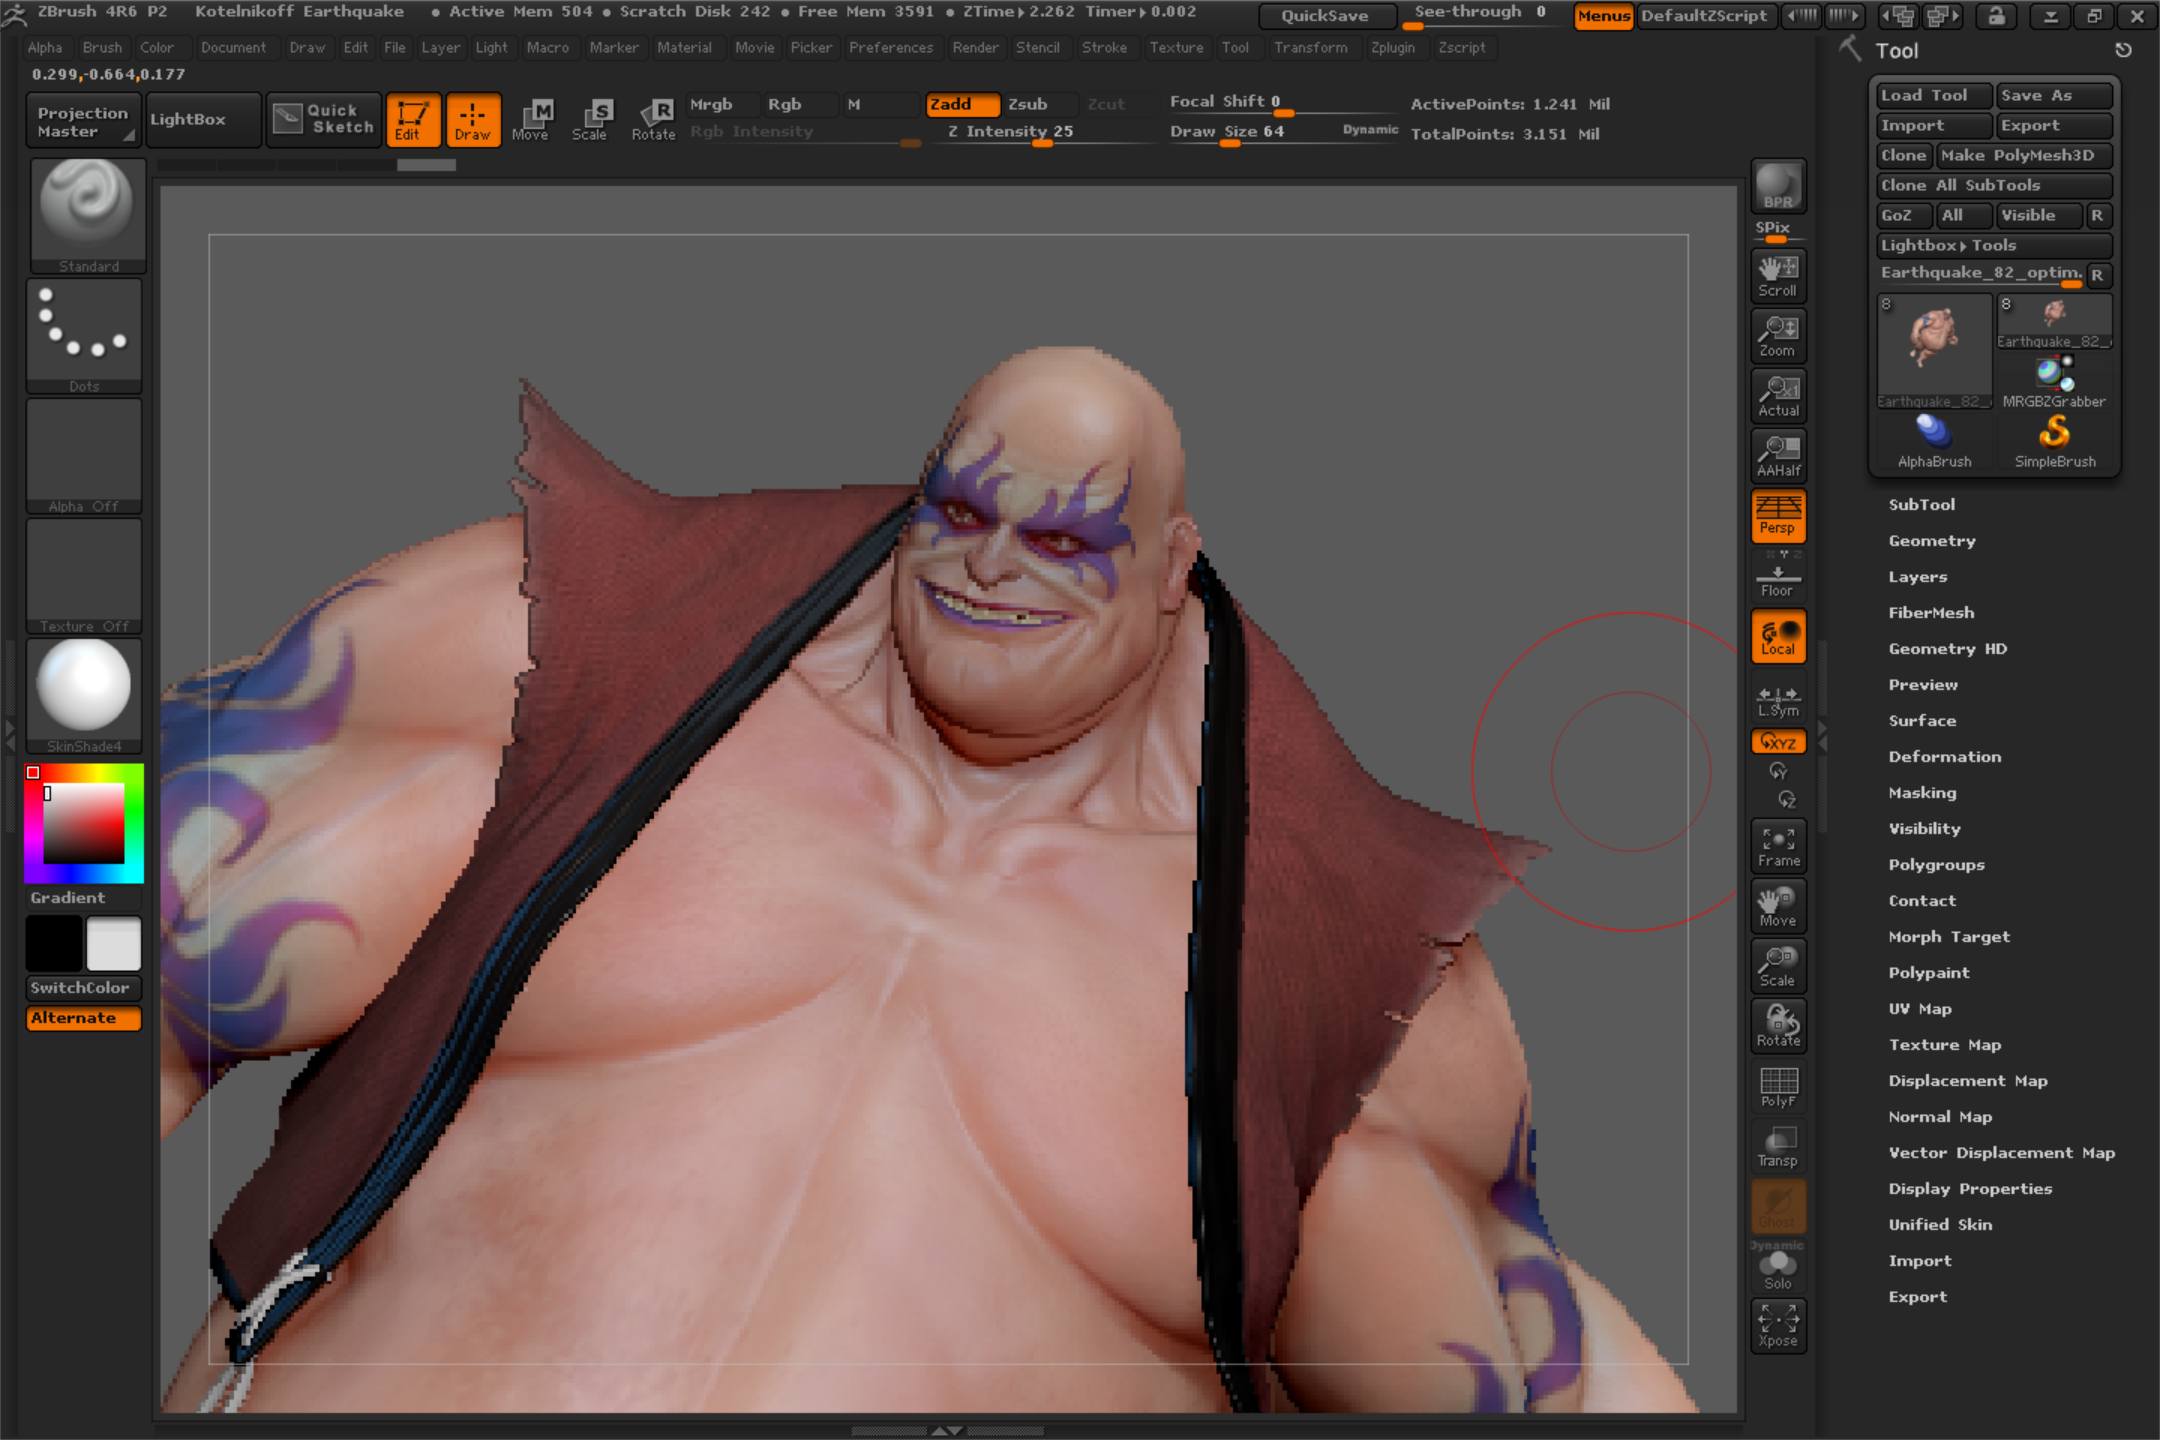 Like many Wintab programs, ZBrush 4R6 runs and is very responsive; however, pen pressure is absent.